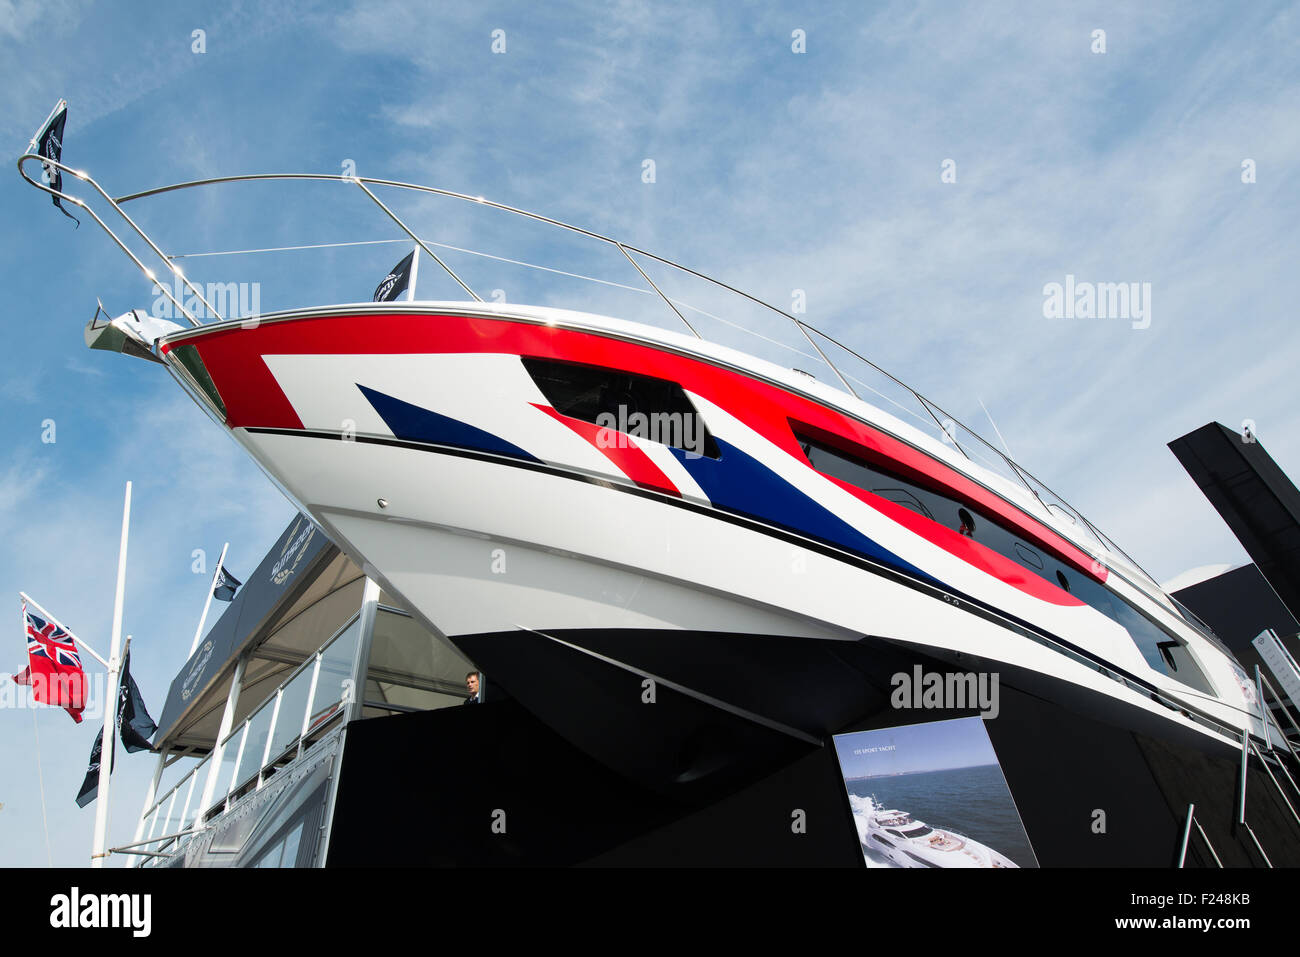 Southampton, UK. 11th September 2015. Southampton Boat Show 2015. A Sunseeker 115 sport yacht seen on the stand Stock Photo